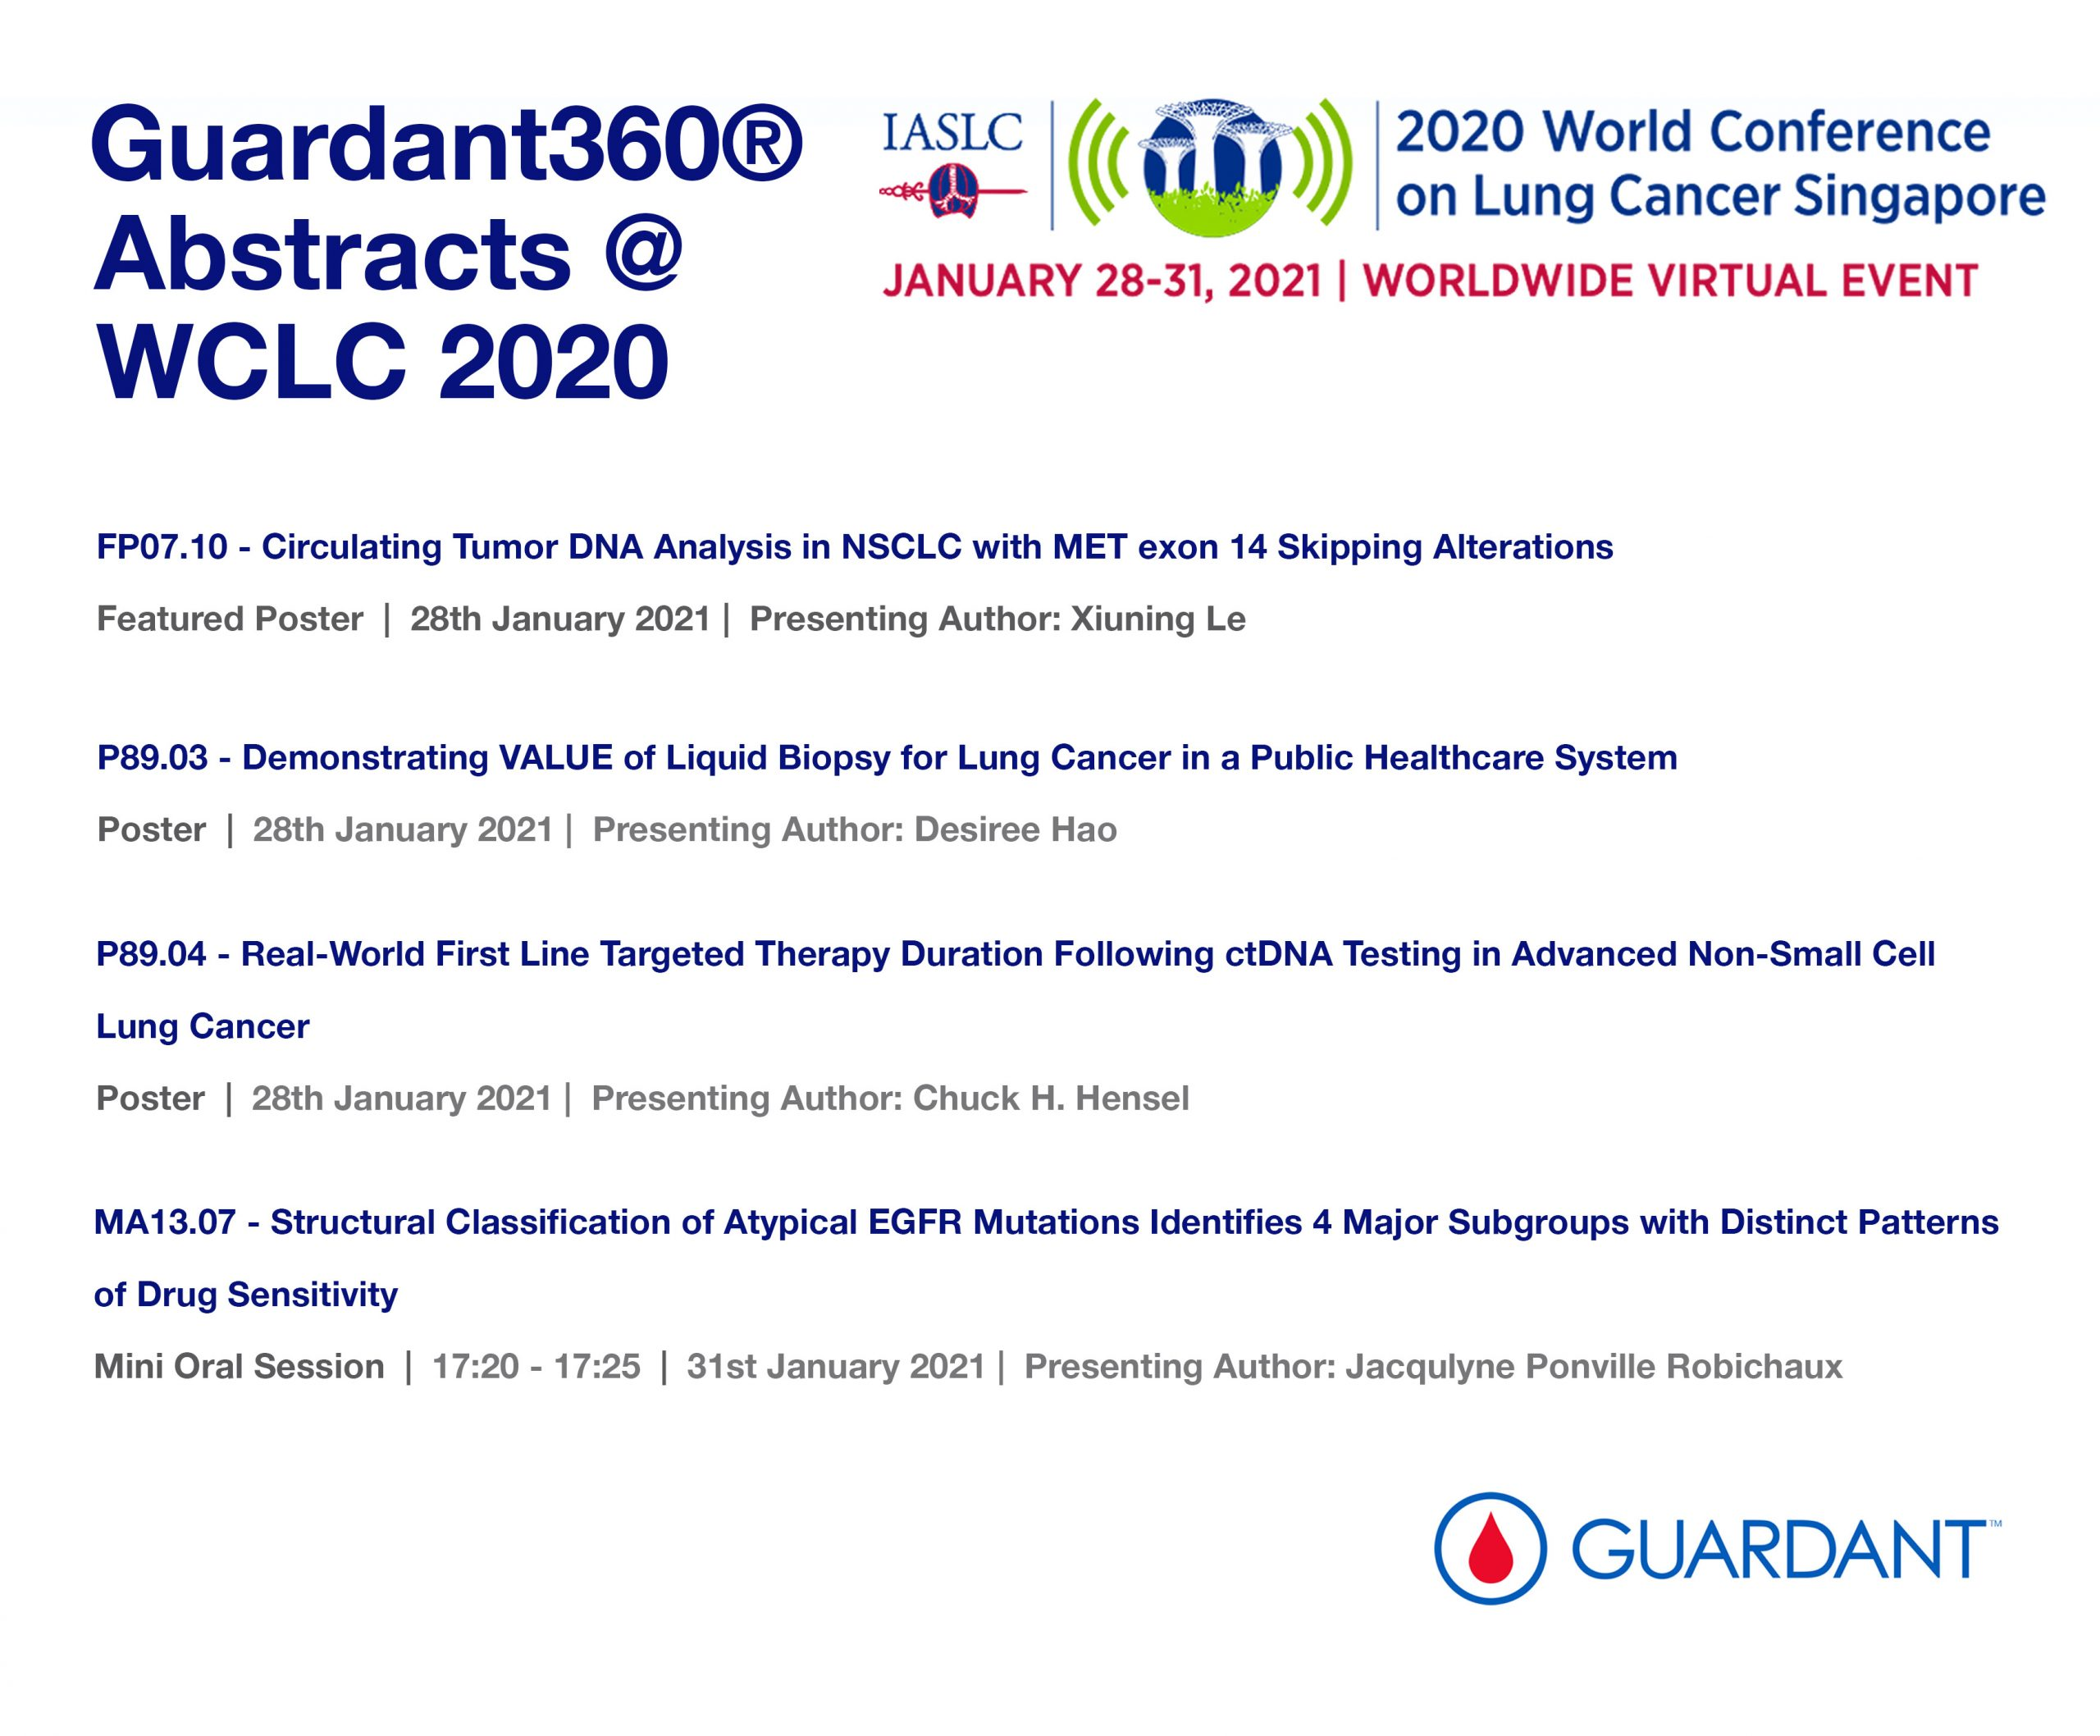 Guardant360® abstracts at the 2020 IASLC World Conference on Lung Cancer